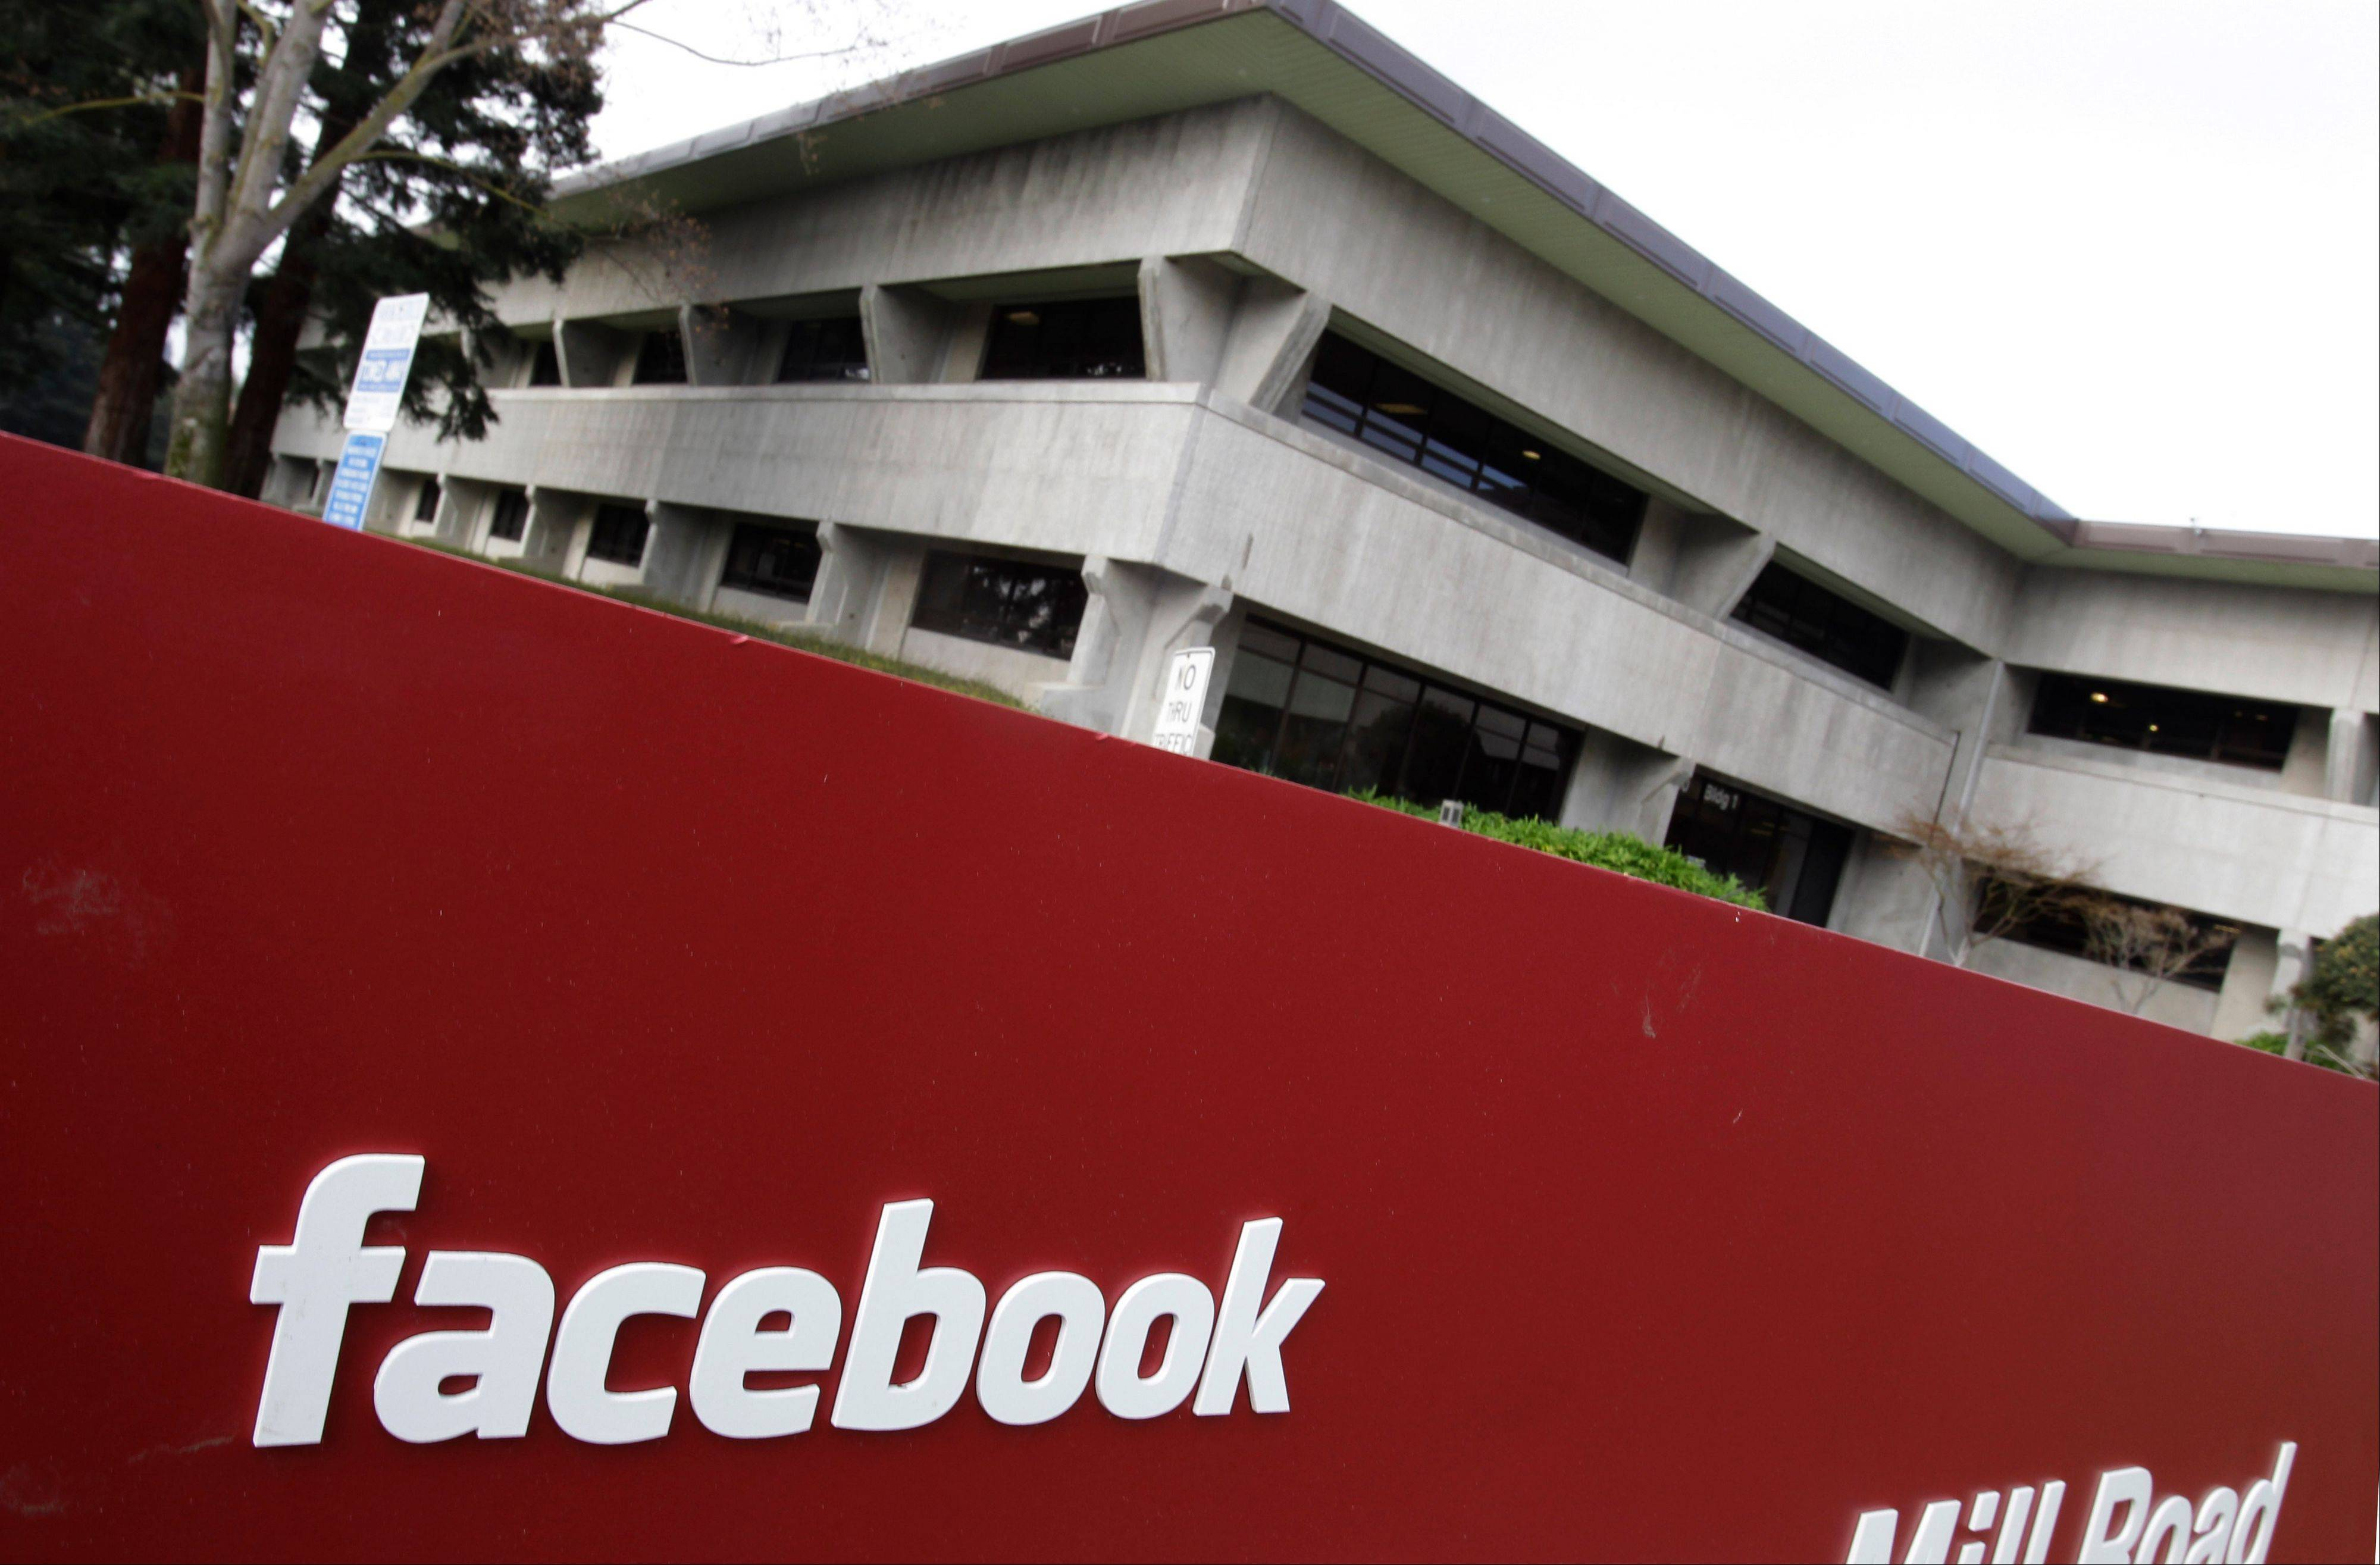 Facebook has won a court battle against a German privacy watchdog that challenged the social networking site�s policy requiring users to register with their real names.